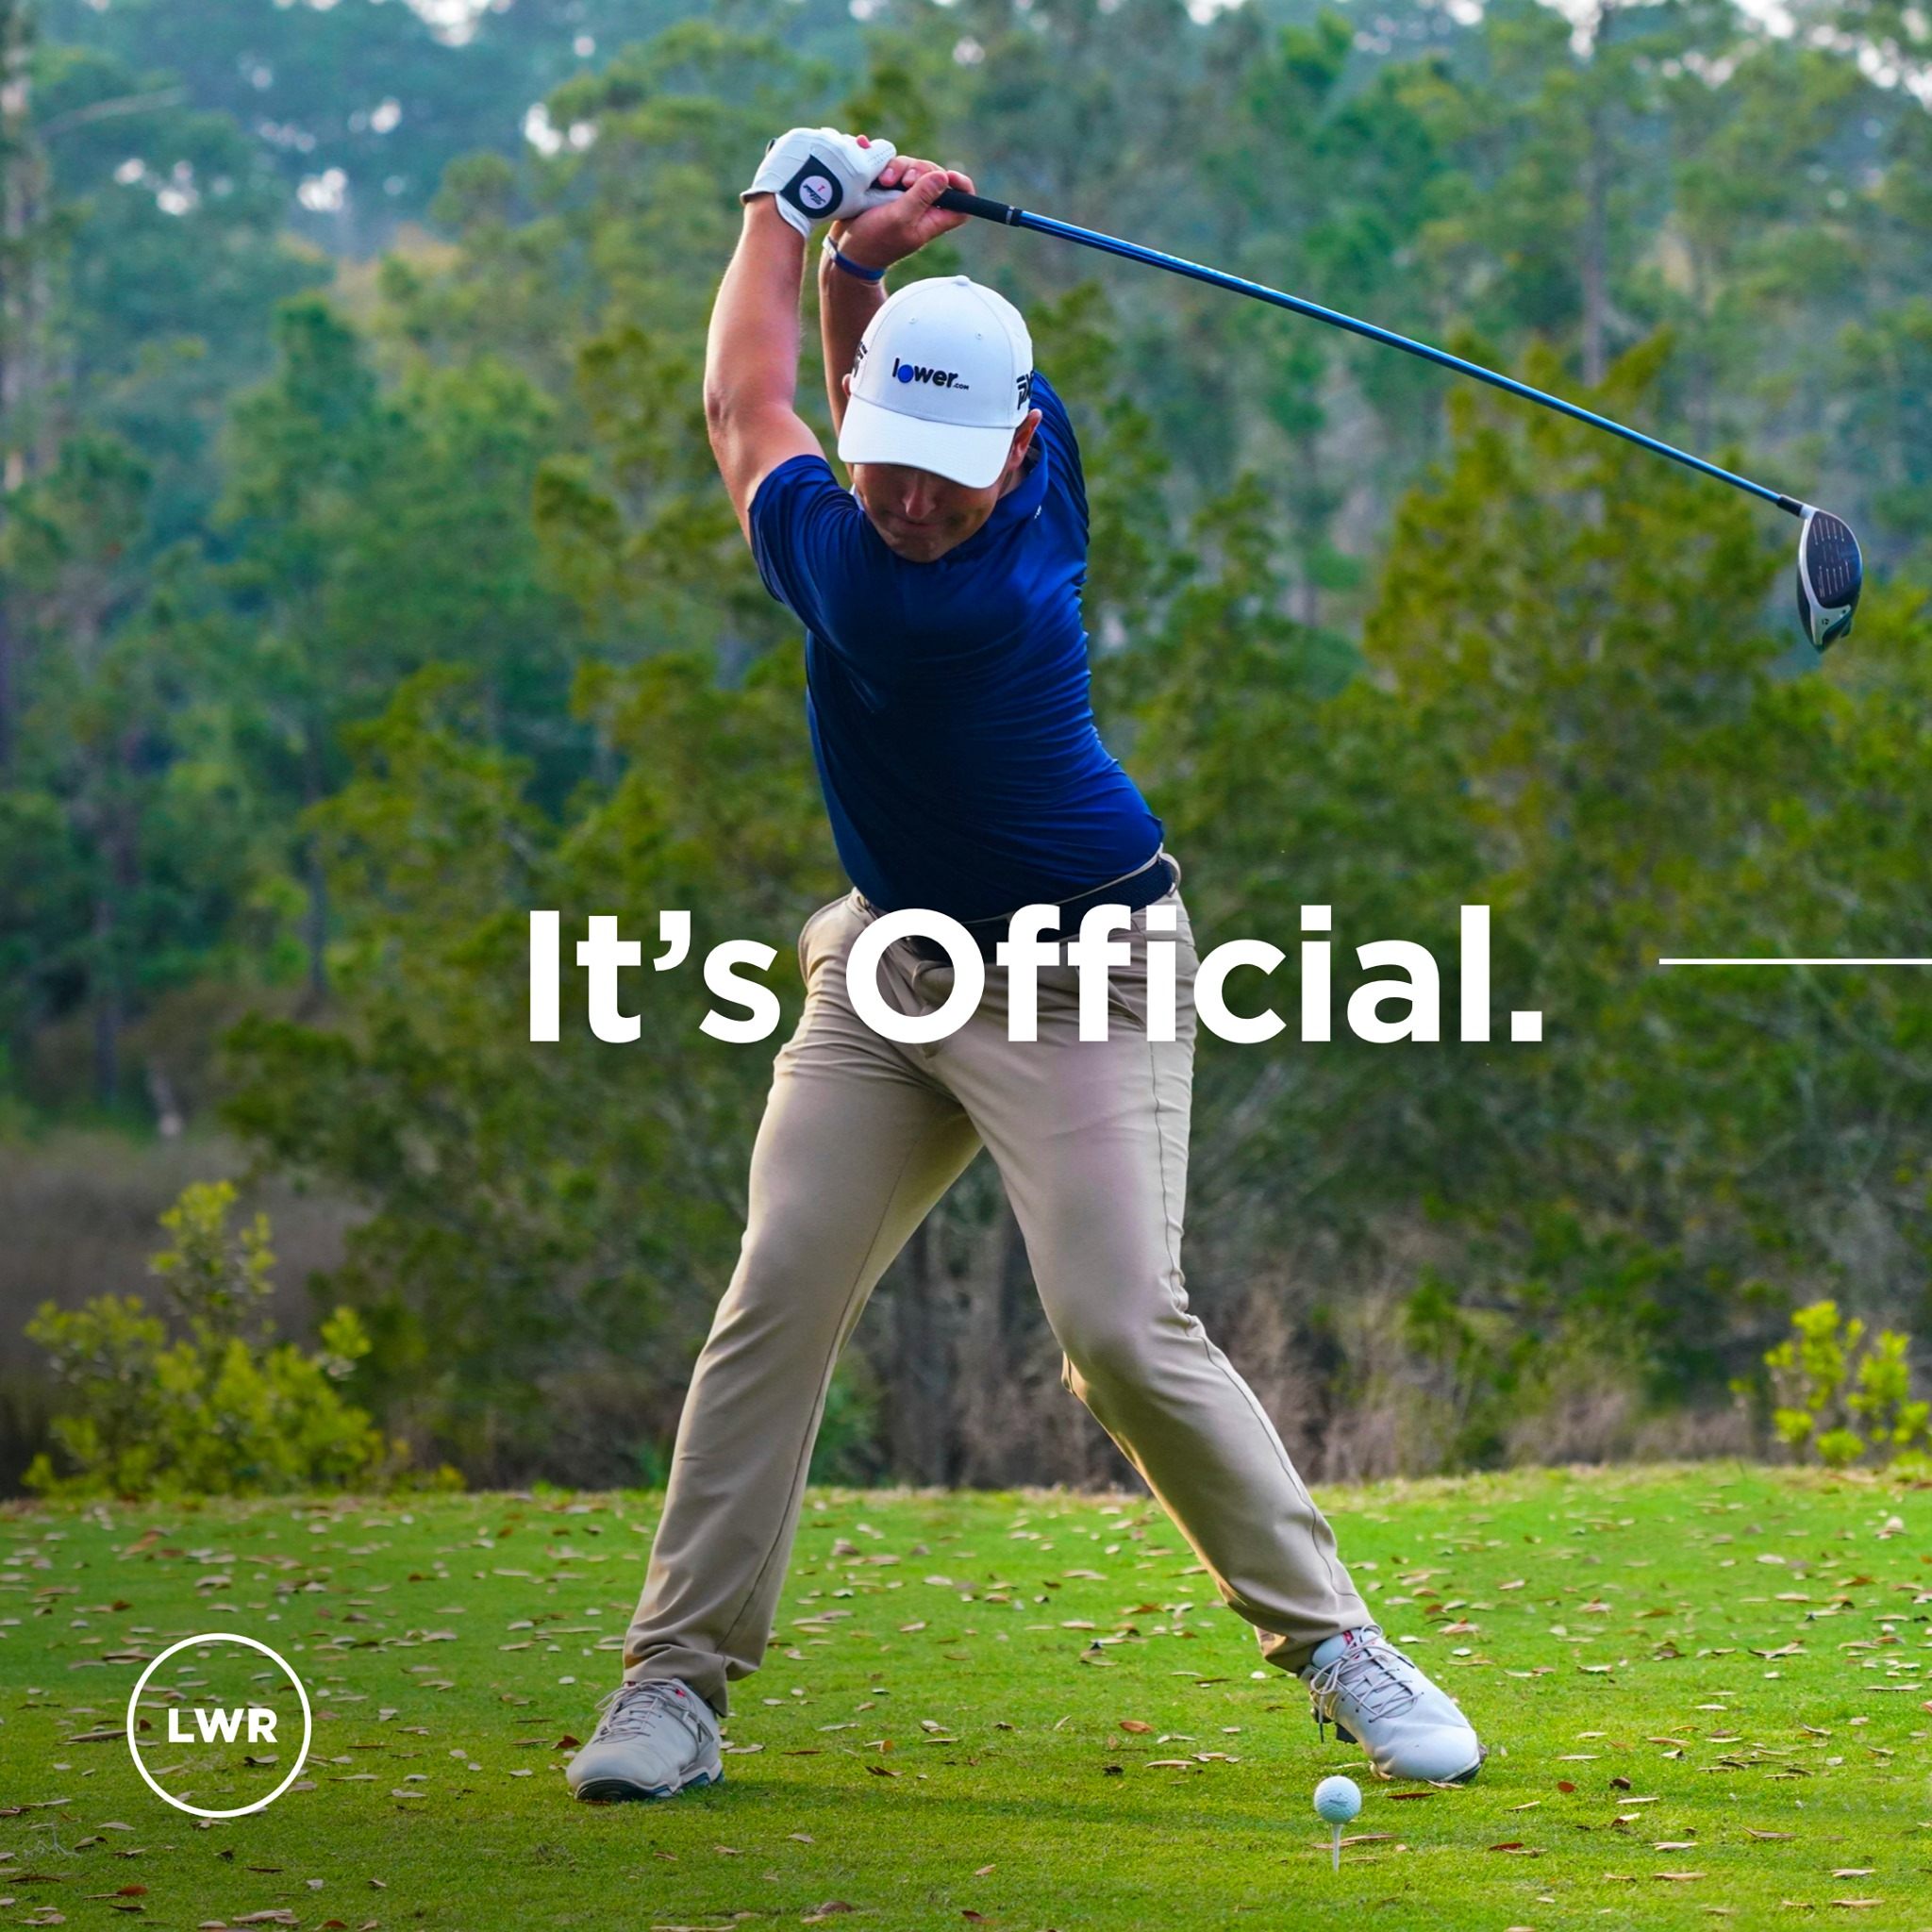 Professional golfer Justin Lower wears new Lower.com hat while practicing his golf swing.